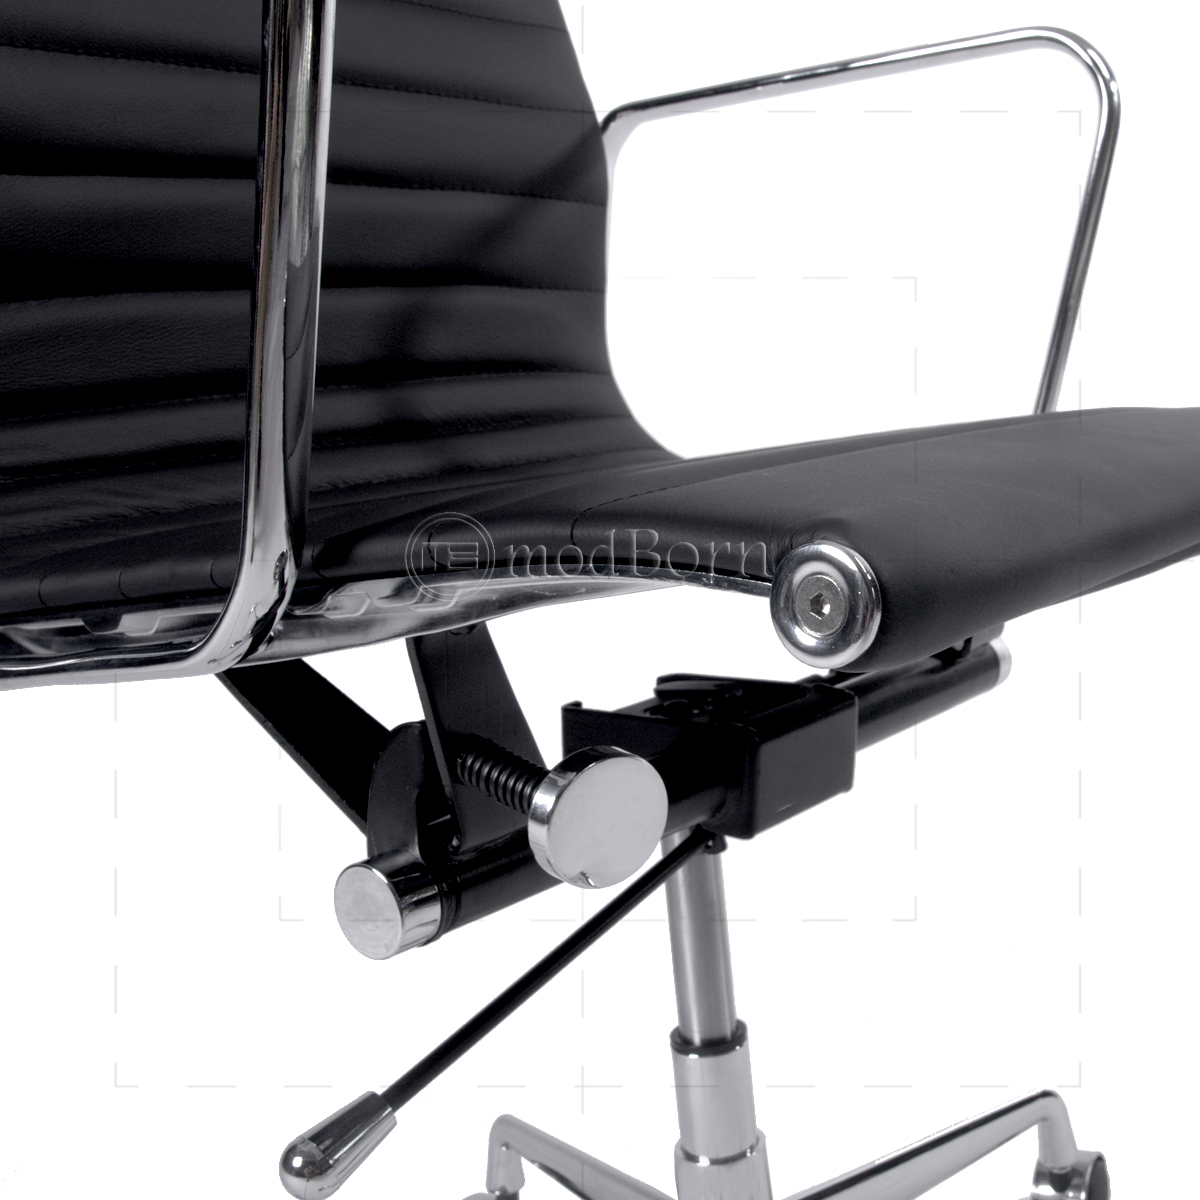 ea119 eames style office chair high back ribbed black leather bedroomsweet eames office chair replicas style